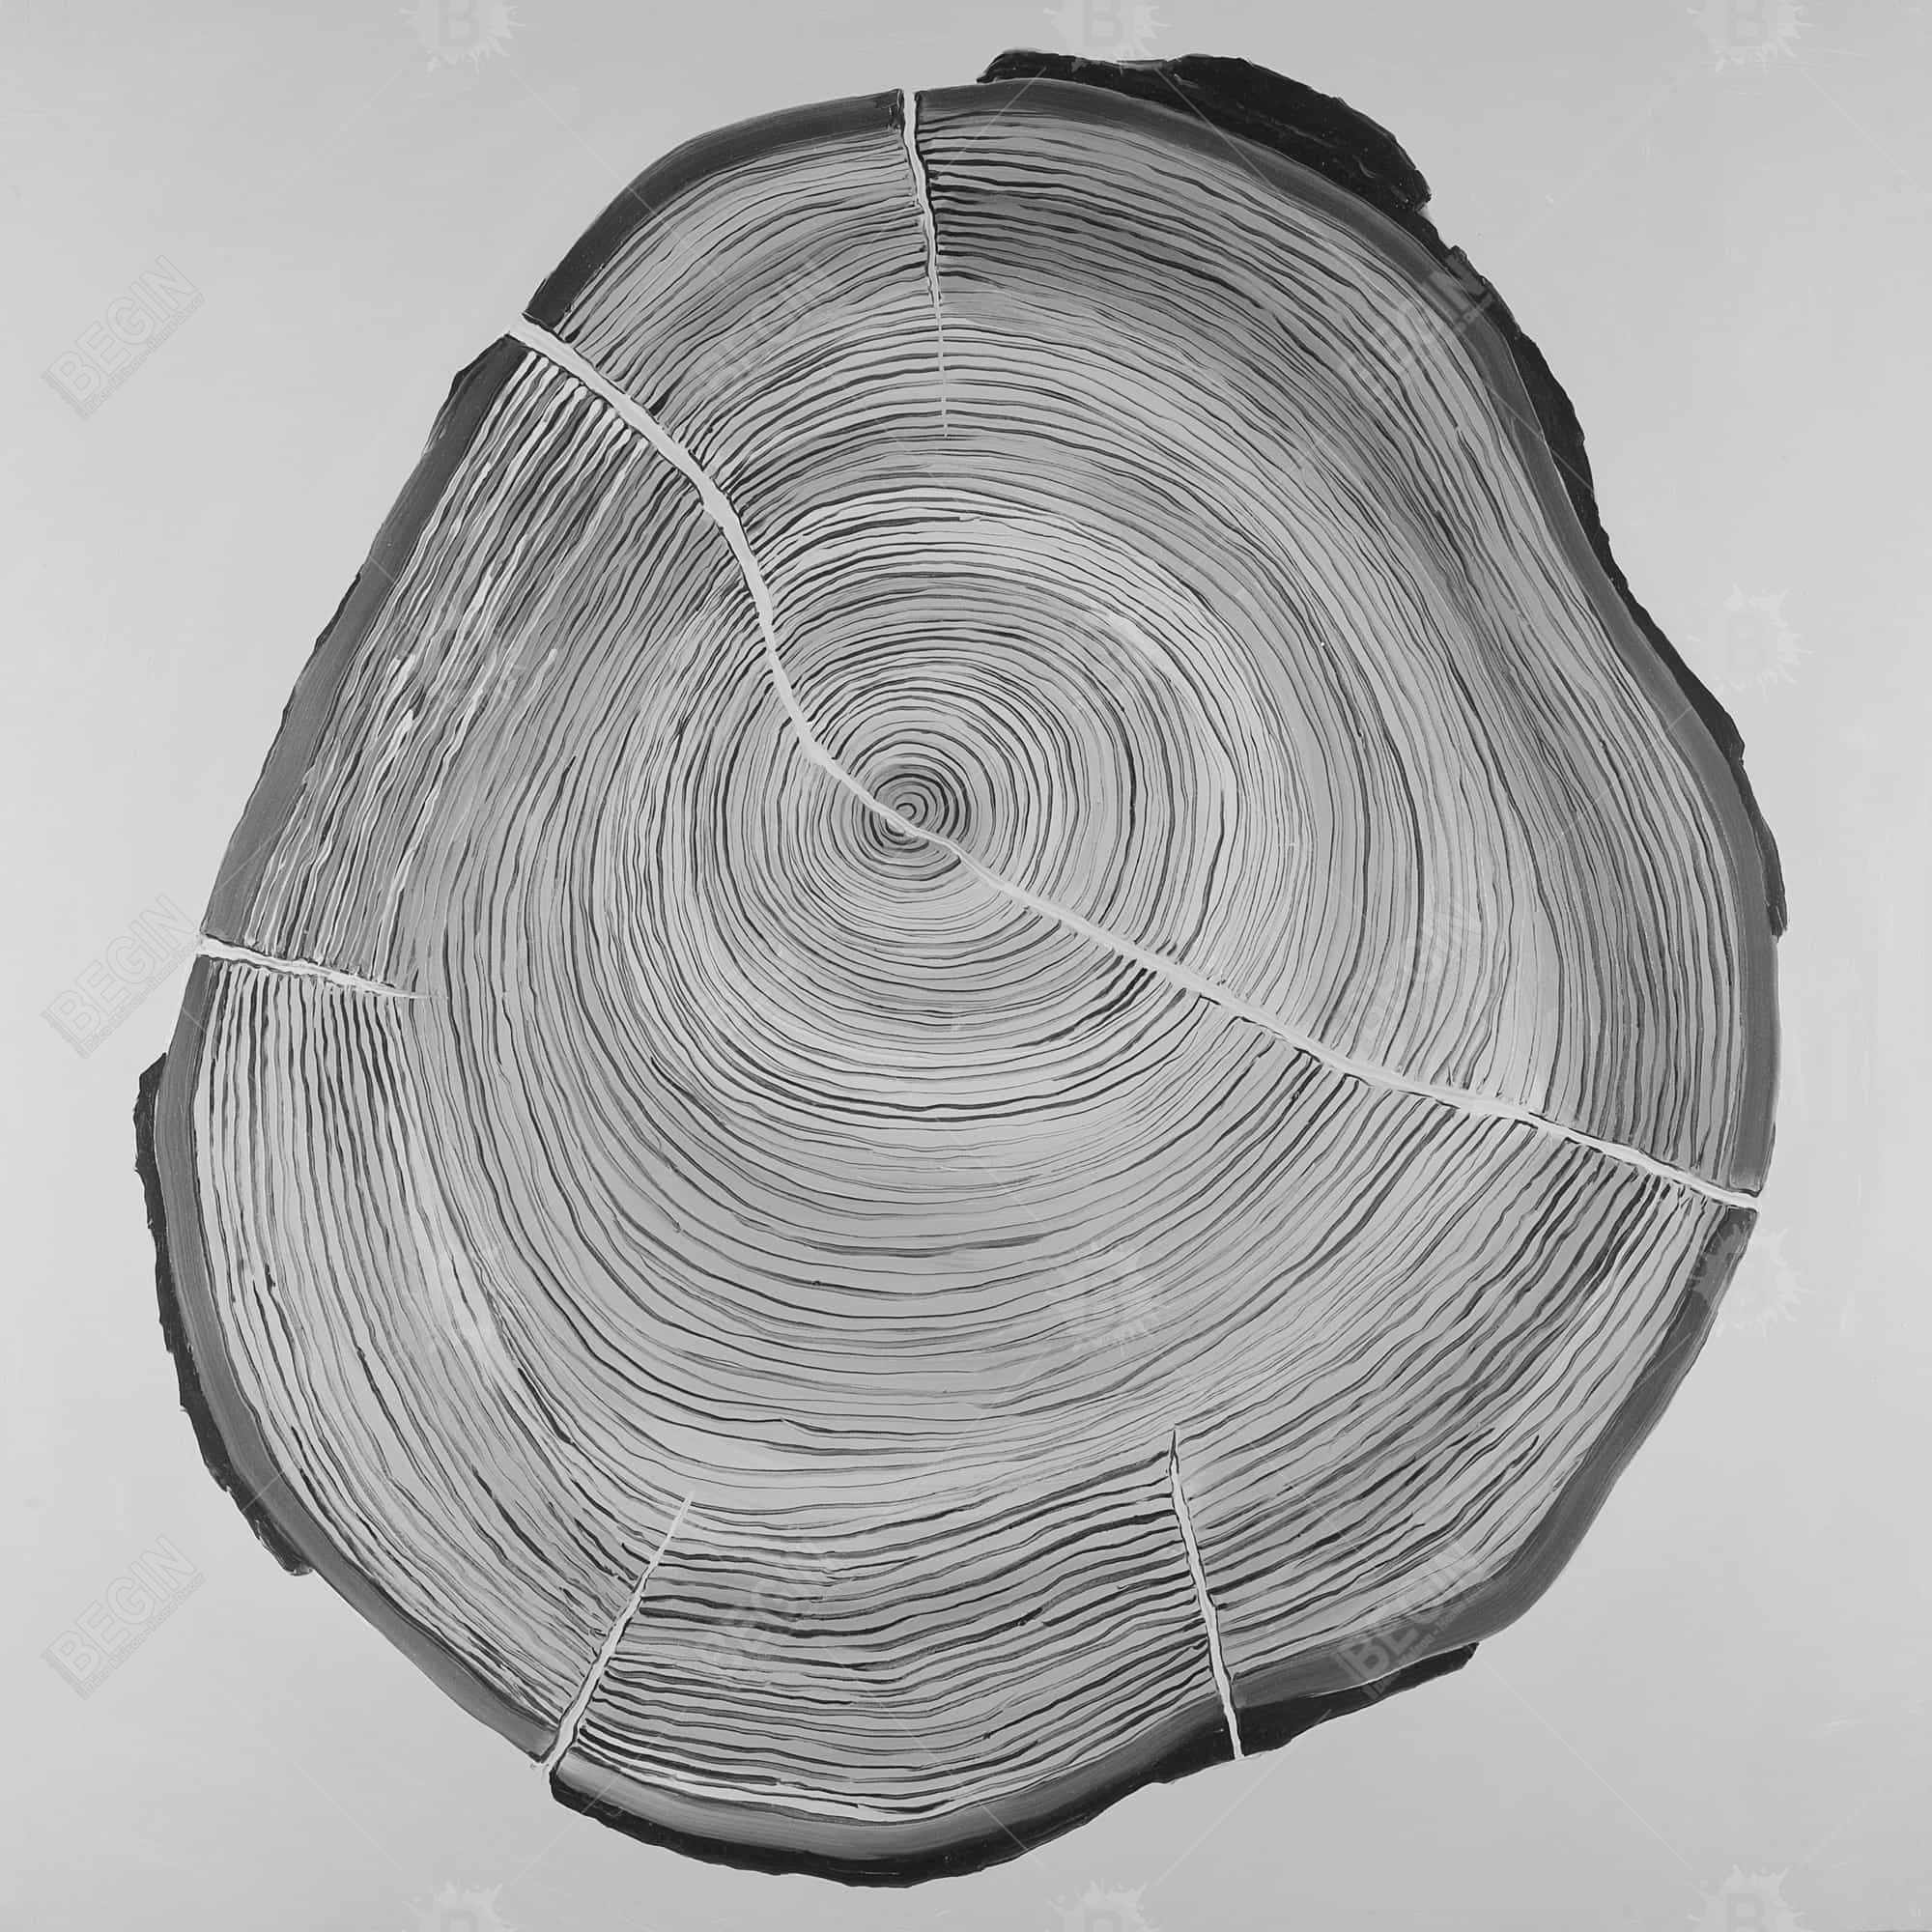 Grayscale wood log